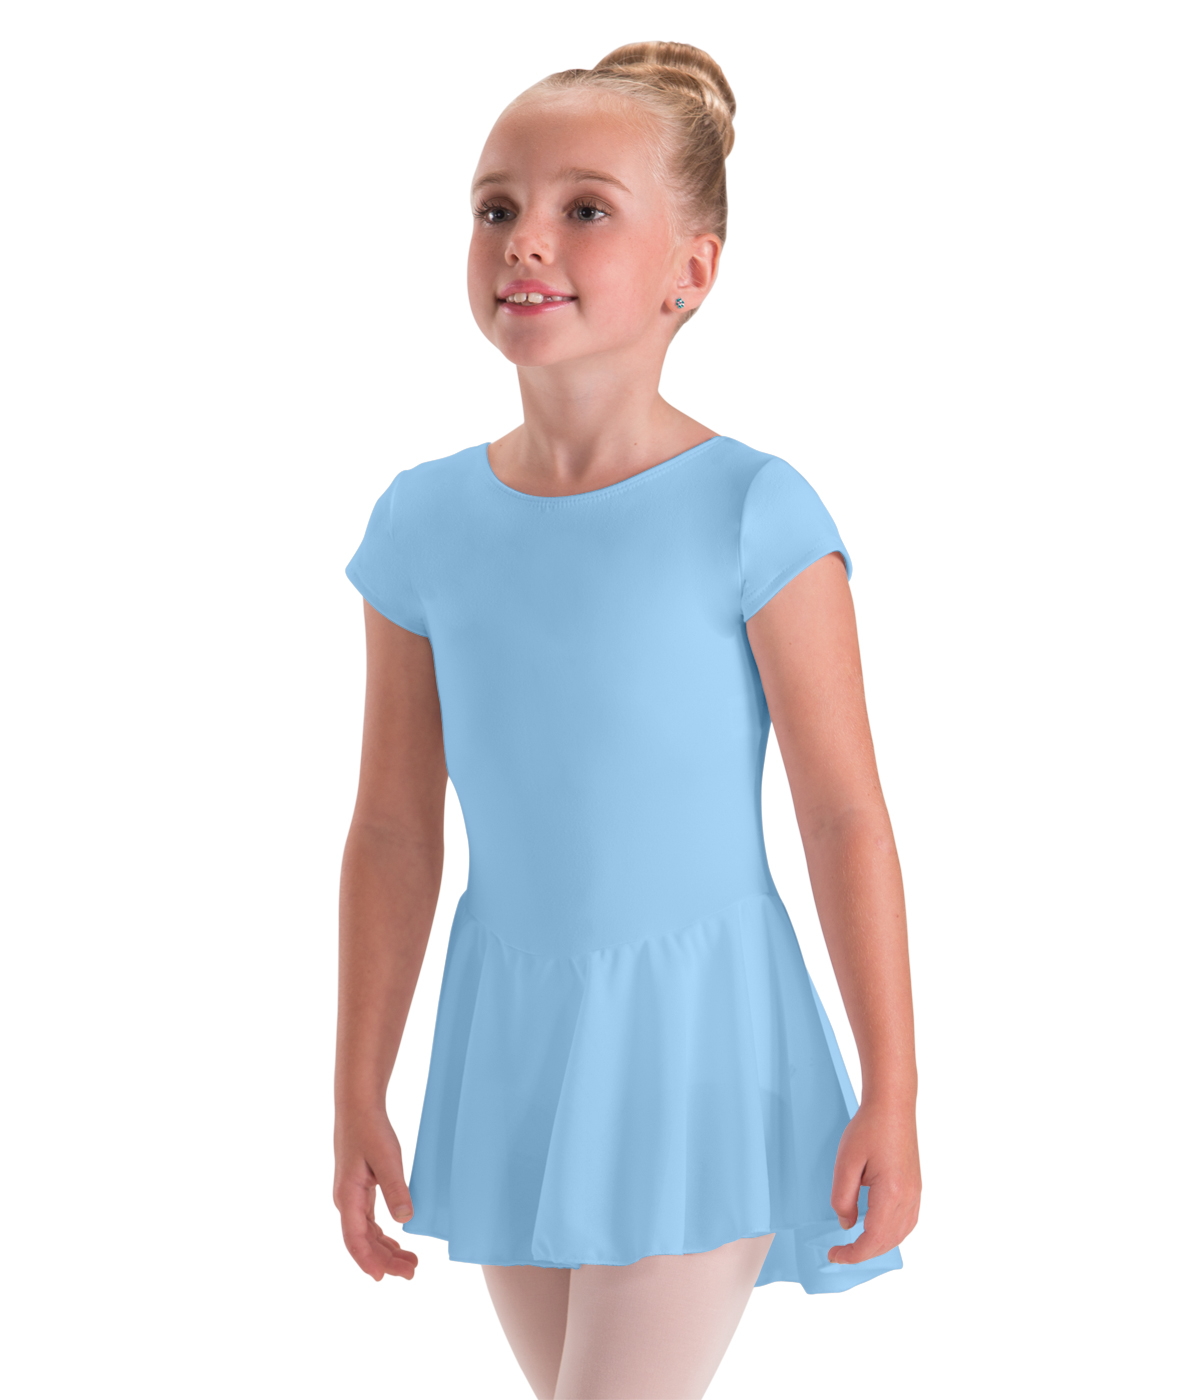 childrens bow back cap sleeve leotard with skirt attached